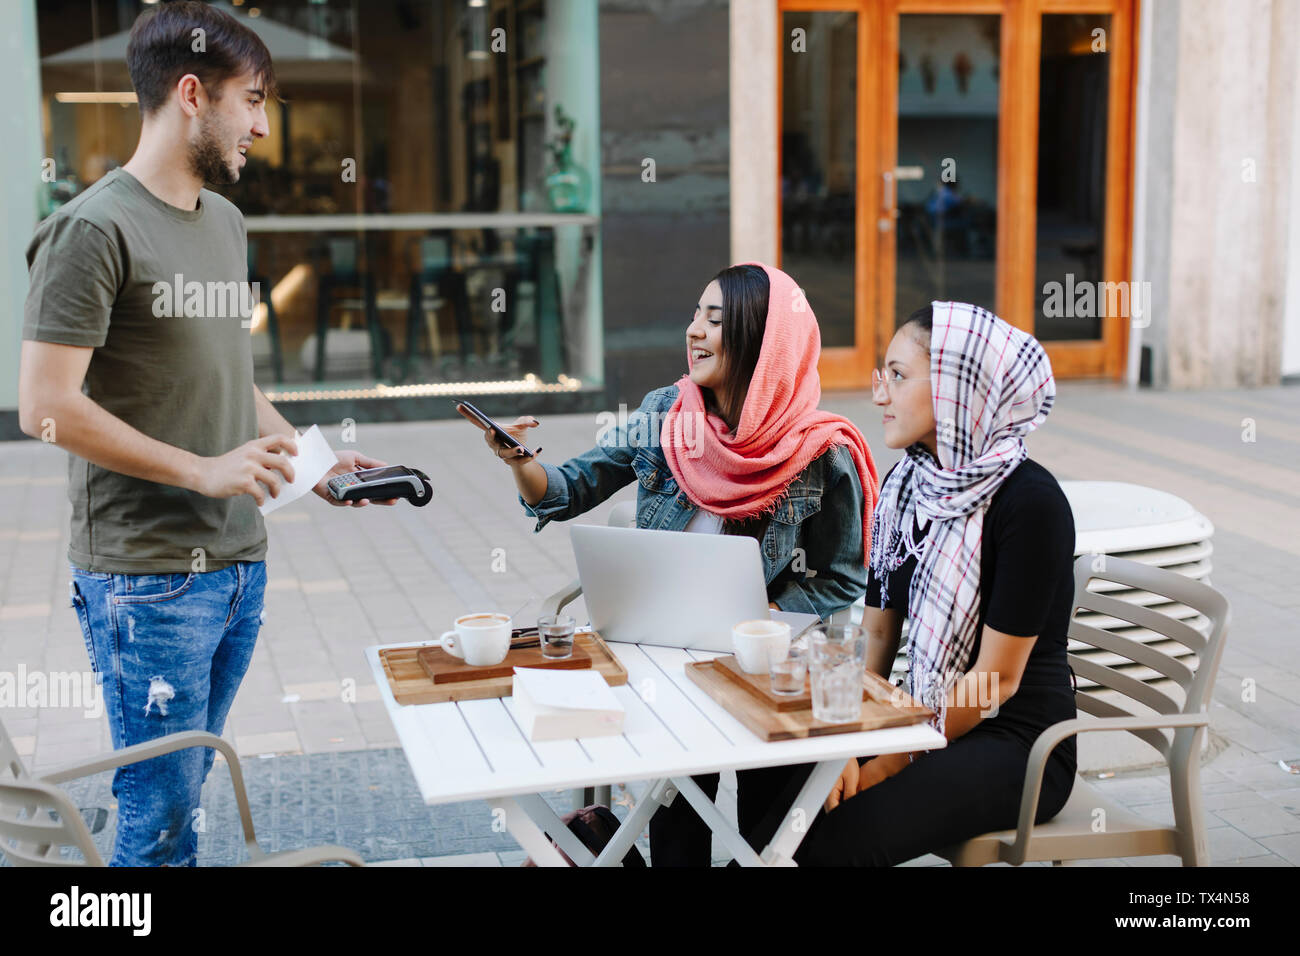 Young woman paying cashless with smartphone in a cafe - Stock Image